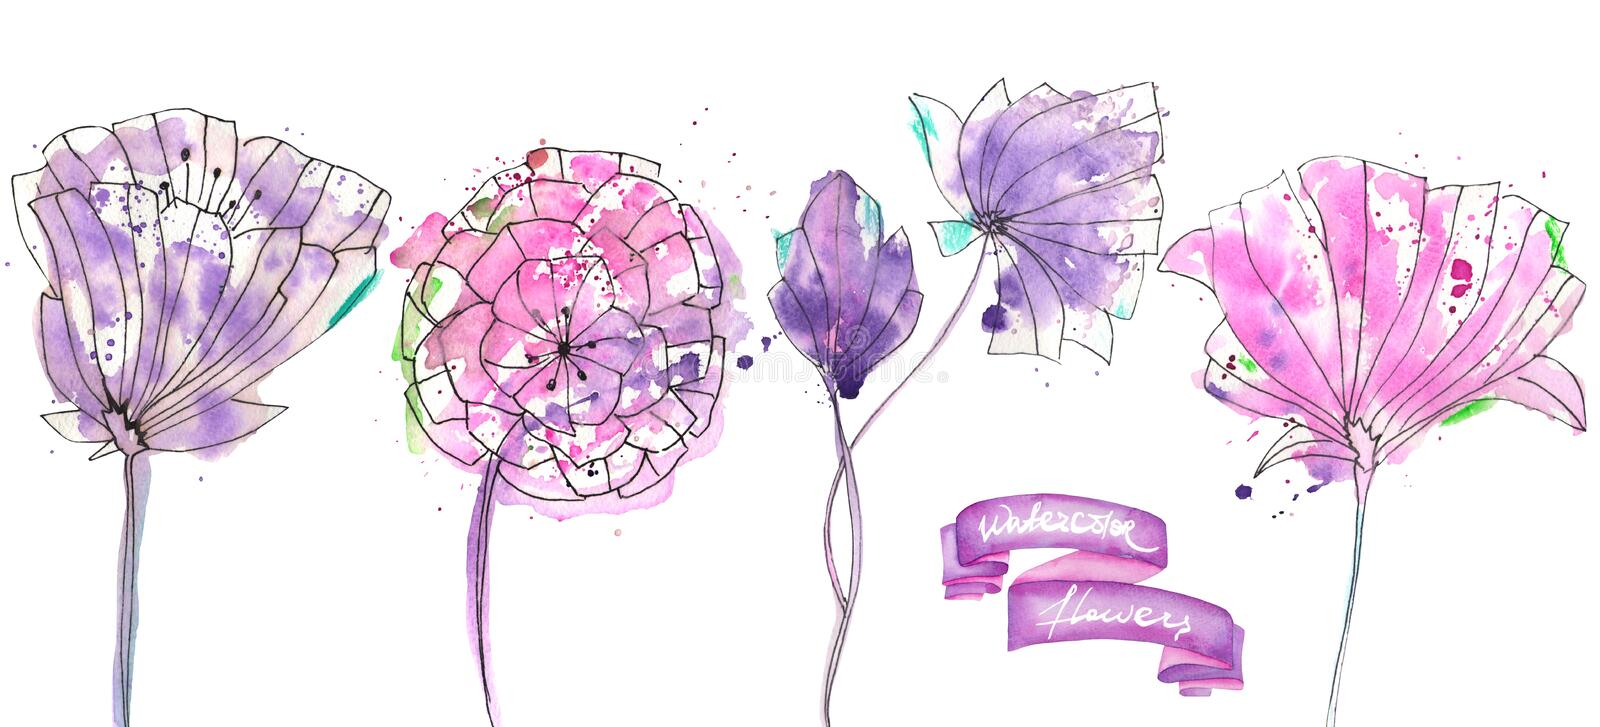 Collection, set with isolated watercolor pink and purple abstract flowers. Collection, set with isolated pink and purple abstract flowers painted in watercolor